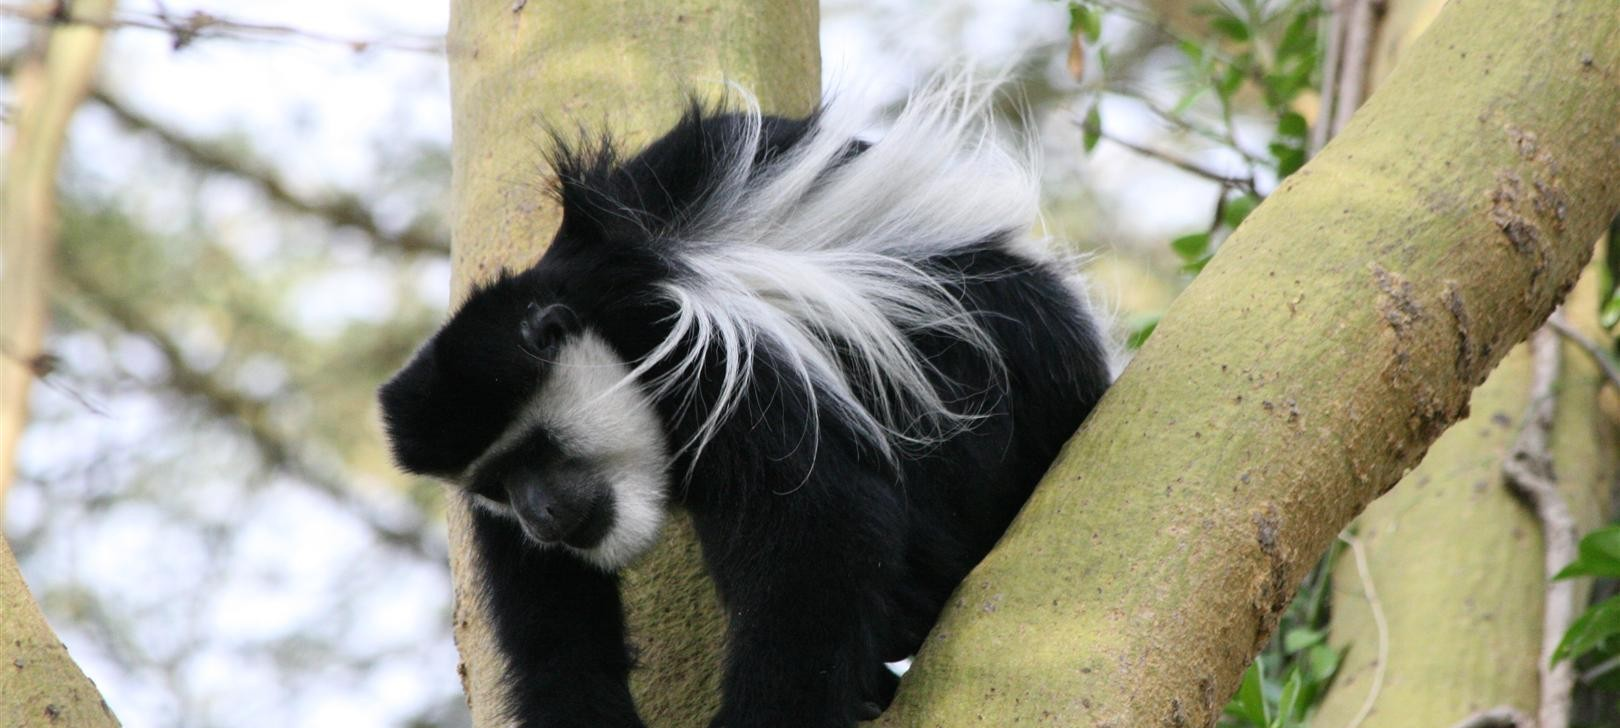 colobus at Elsamere more (photo by Steward Shang)